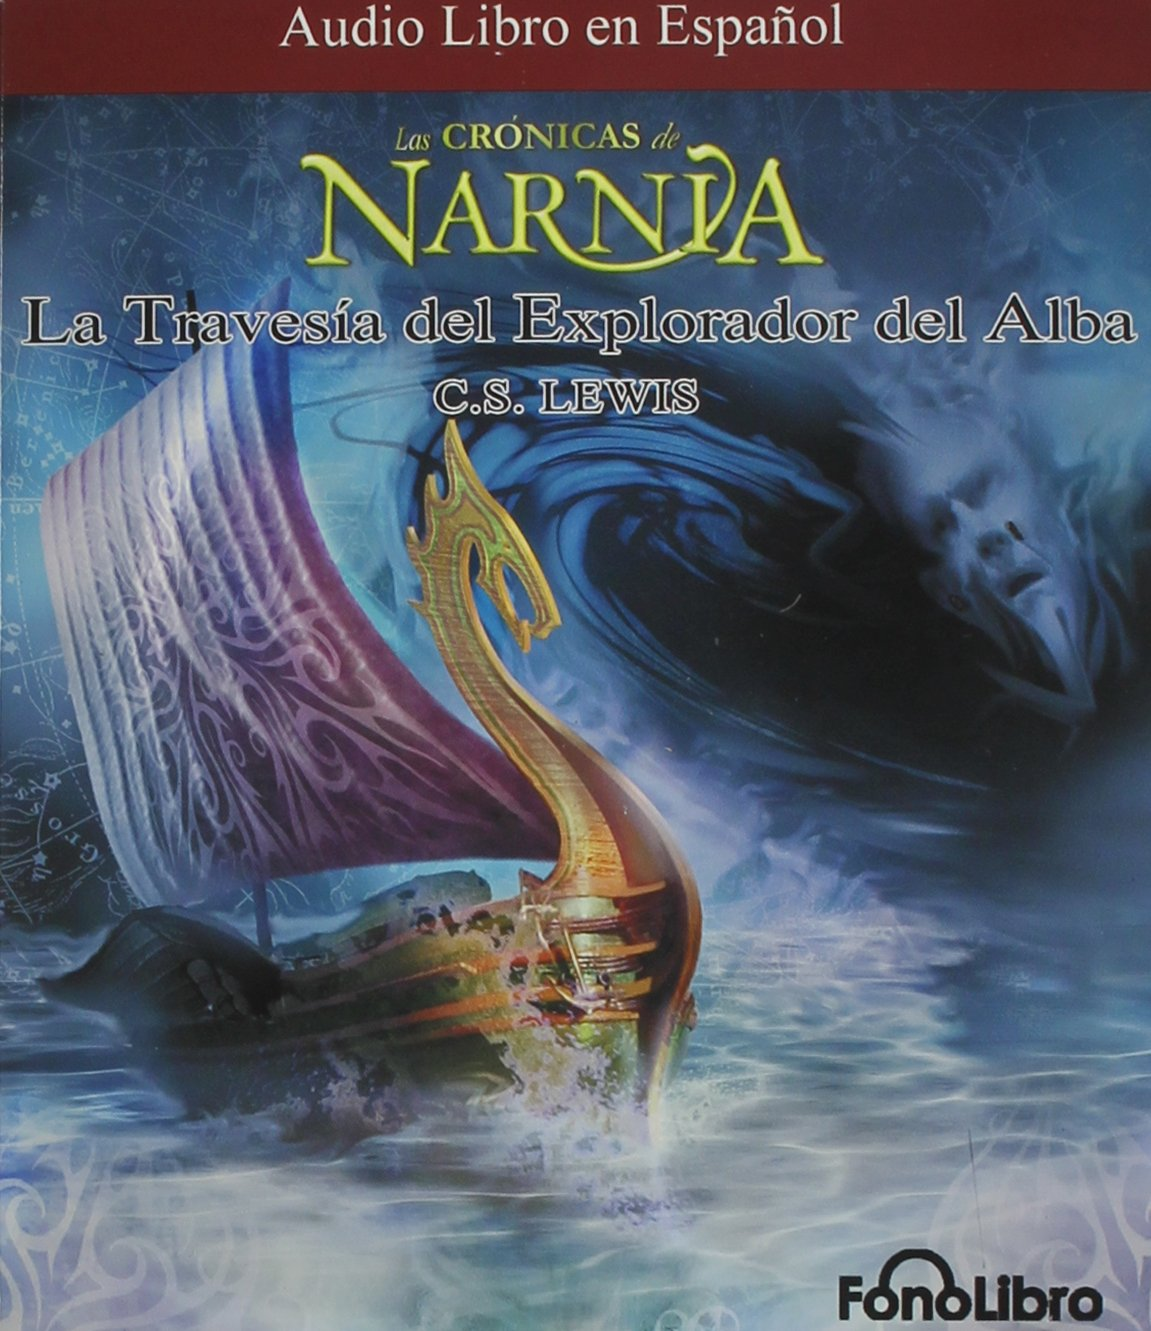 La Travesia del Explorador del Alba (Chronicles of Narnia ...